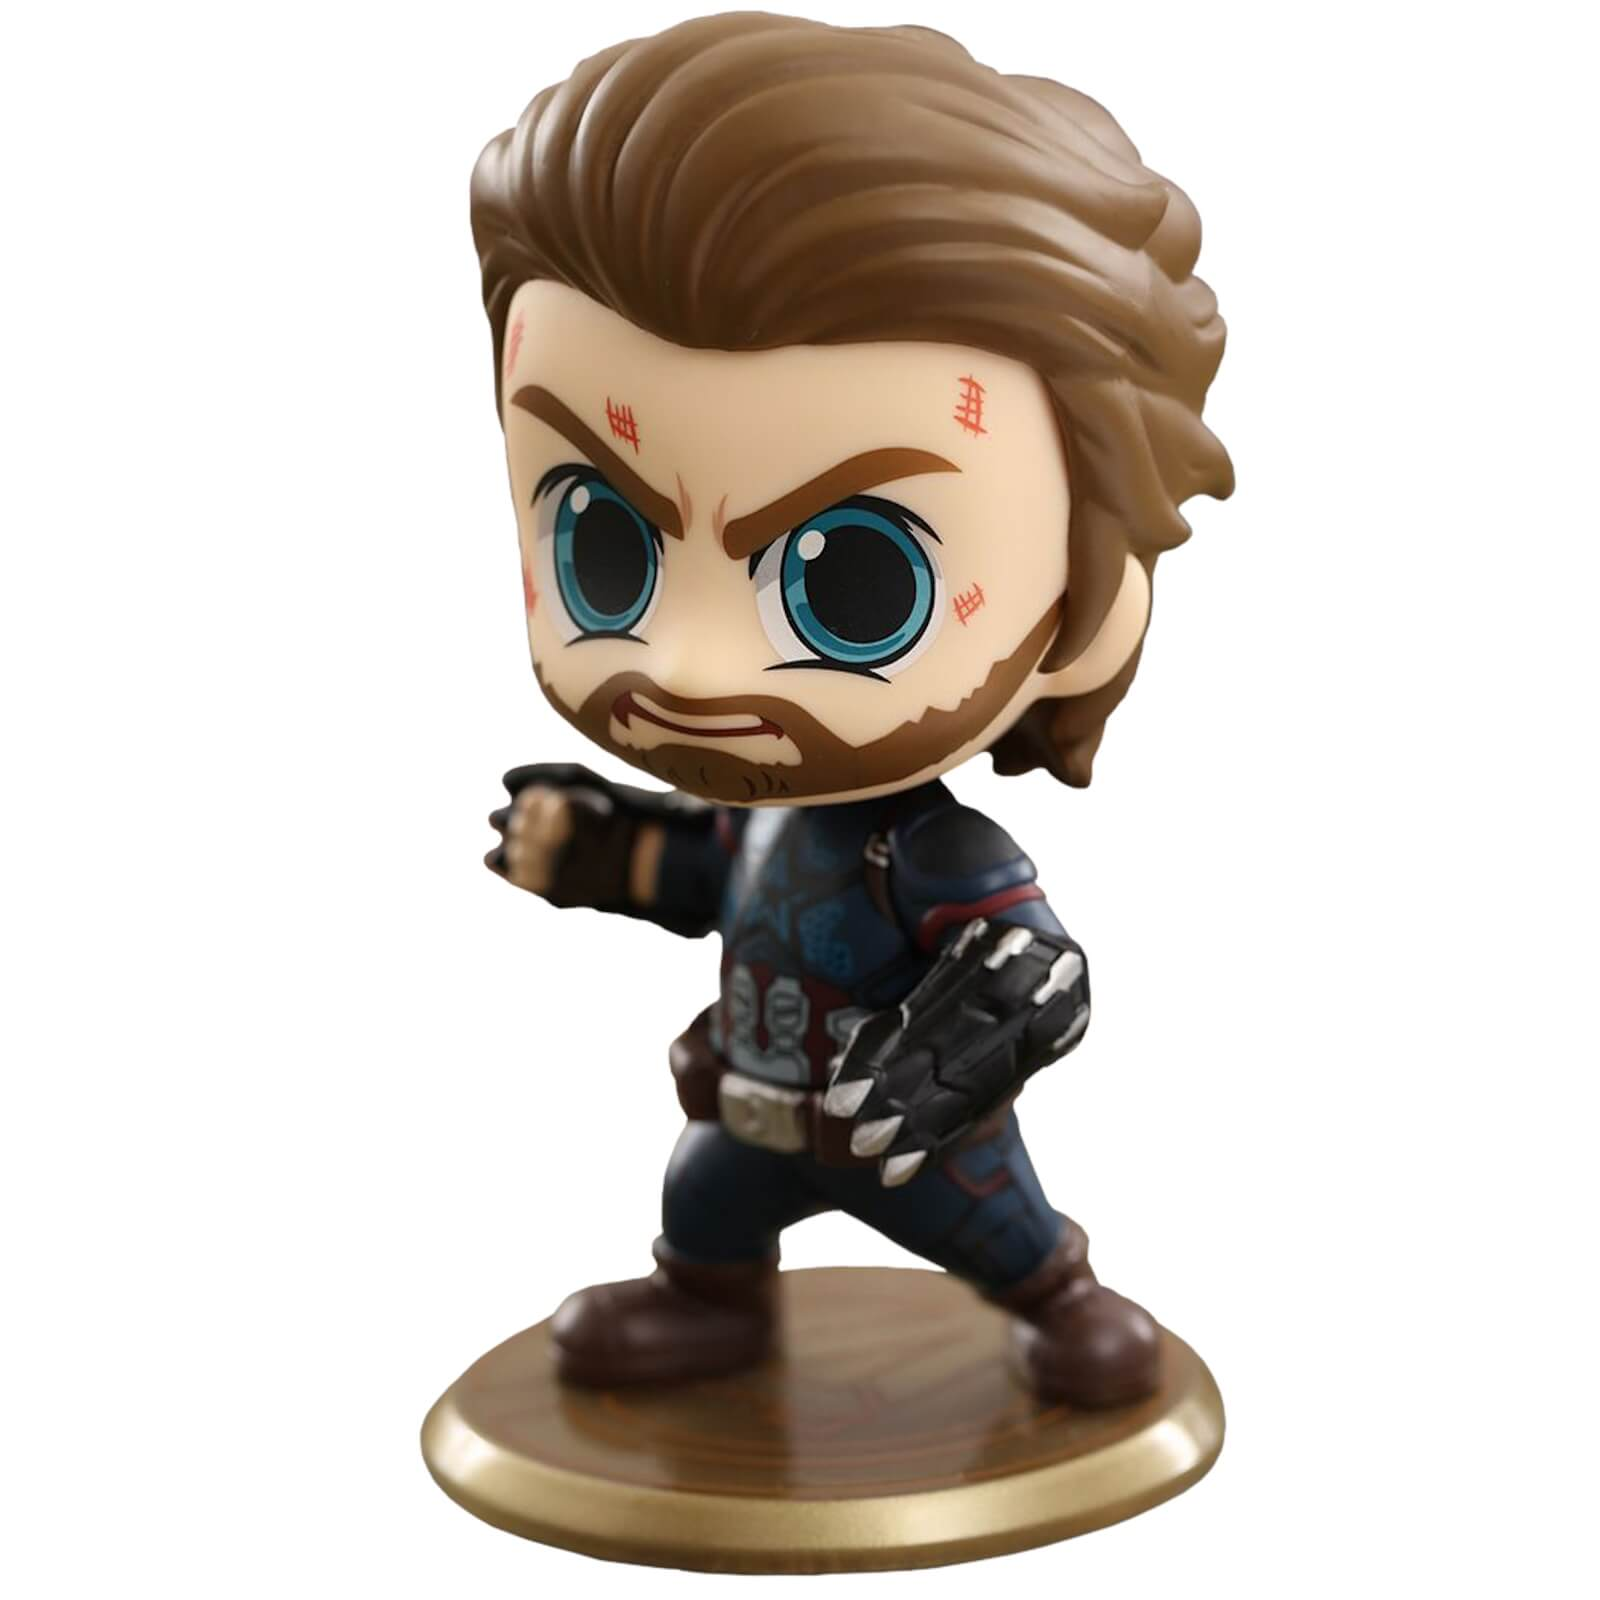 Image of Hot Toys Avengers: Infinity War Cosbaby Captain America - Size S